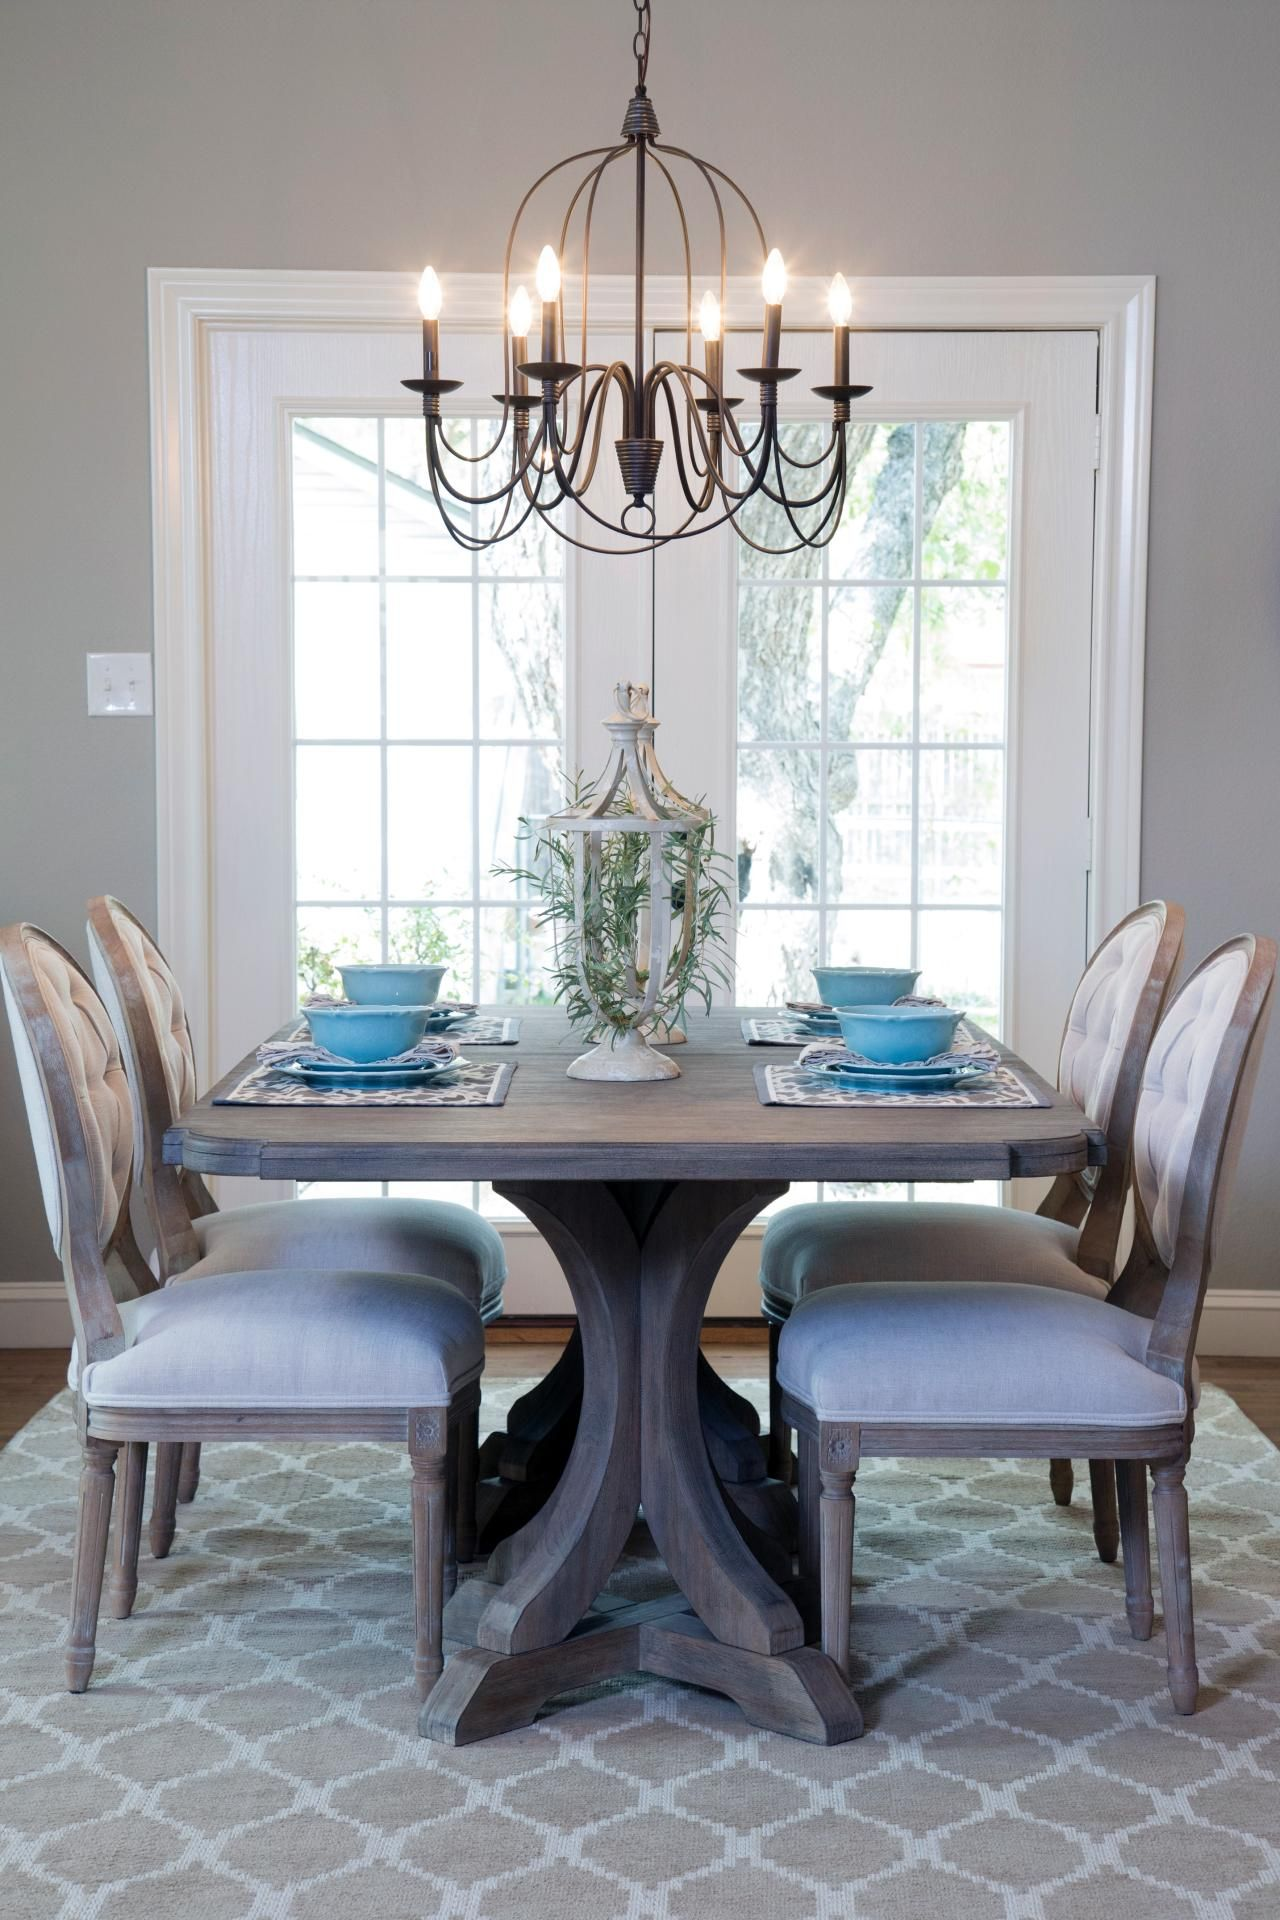 Chandelier Dining Room Table